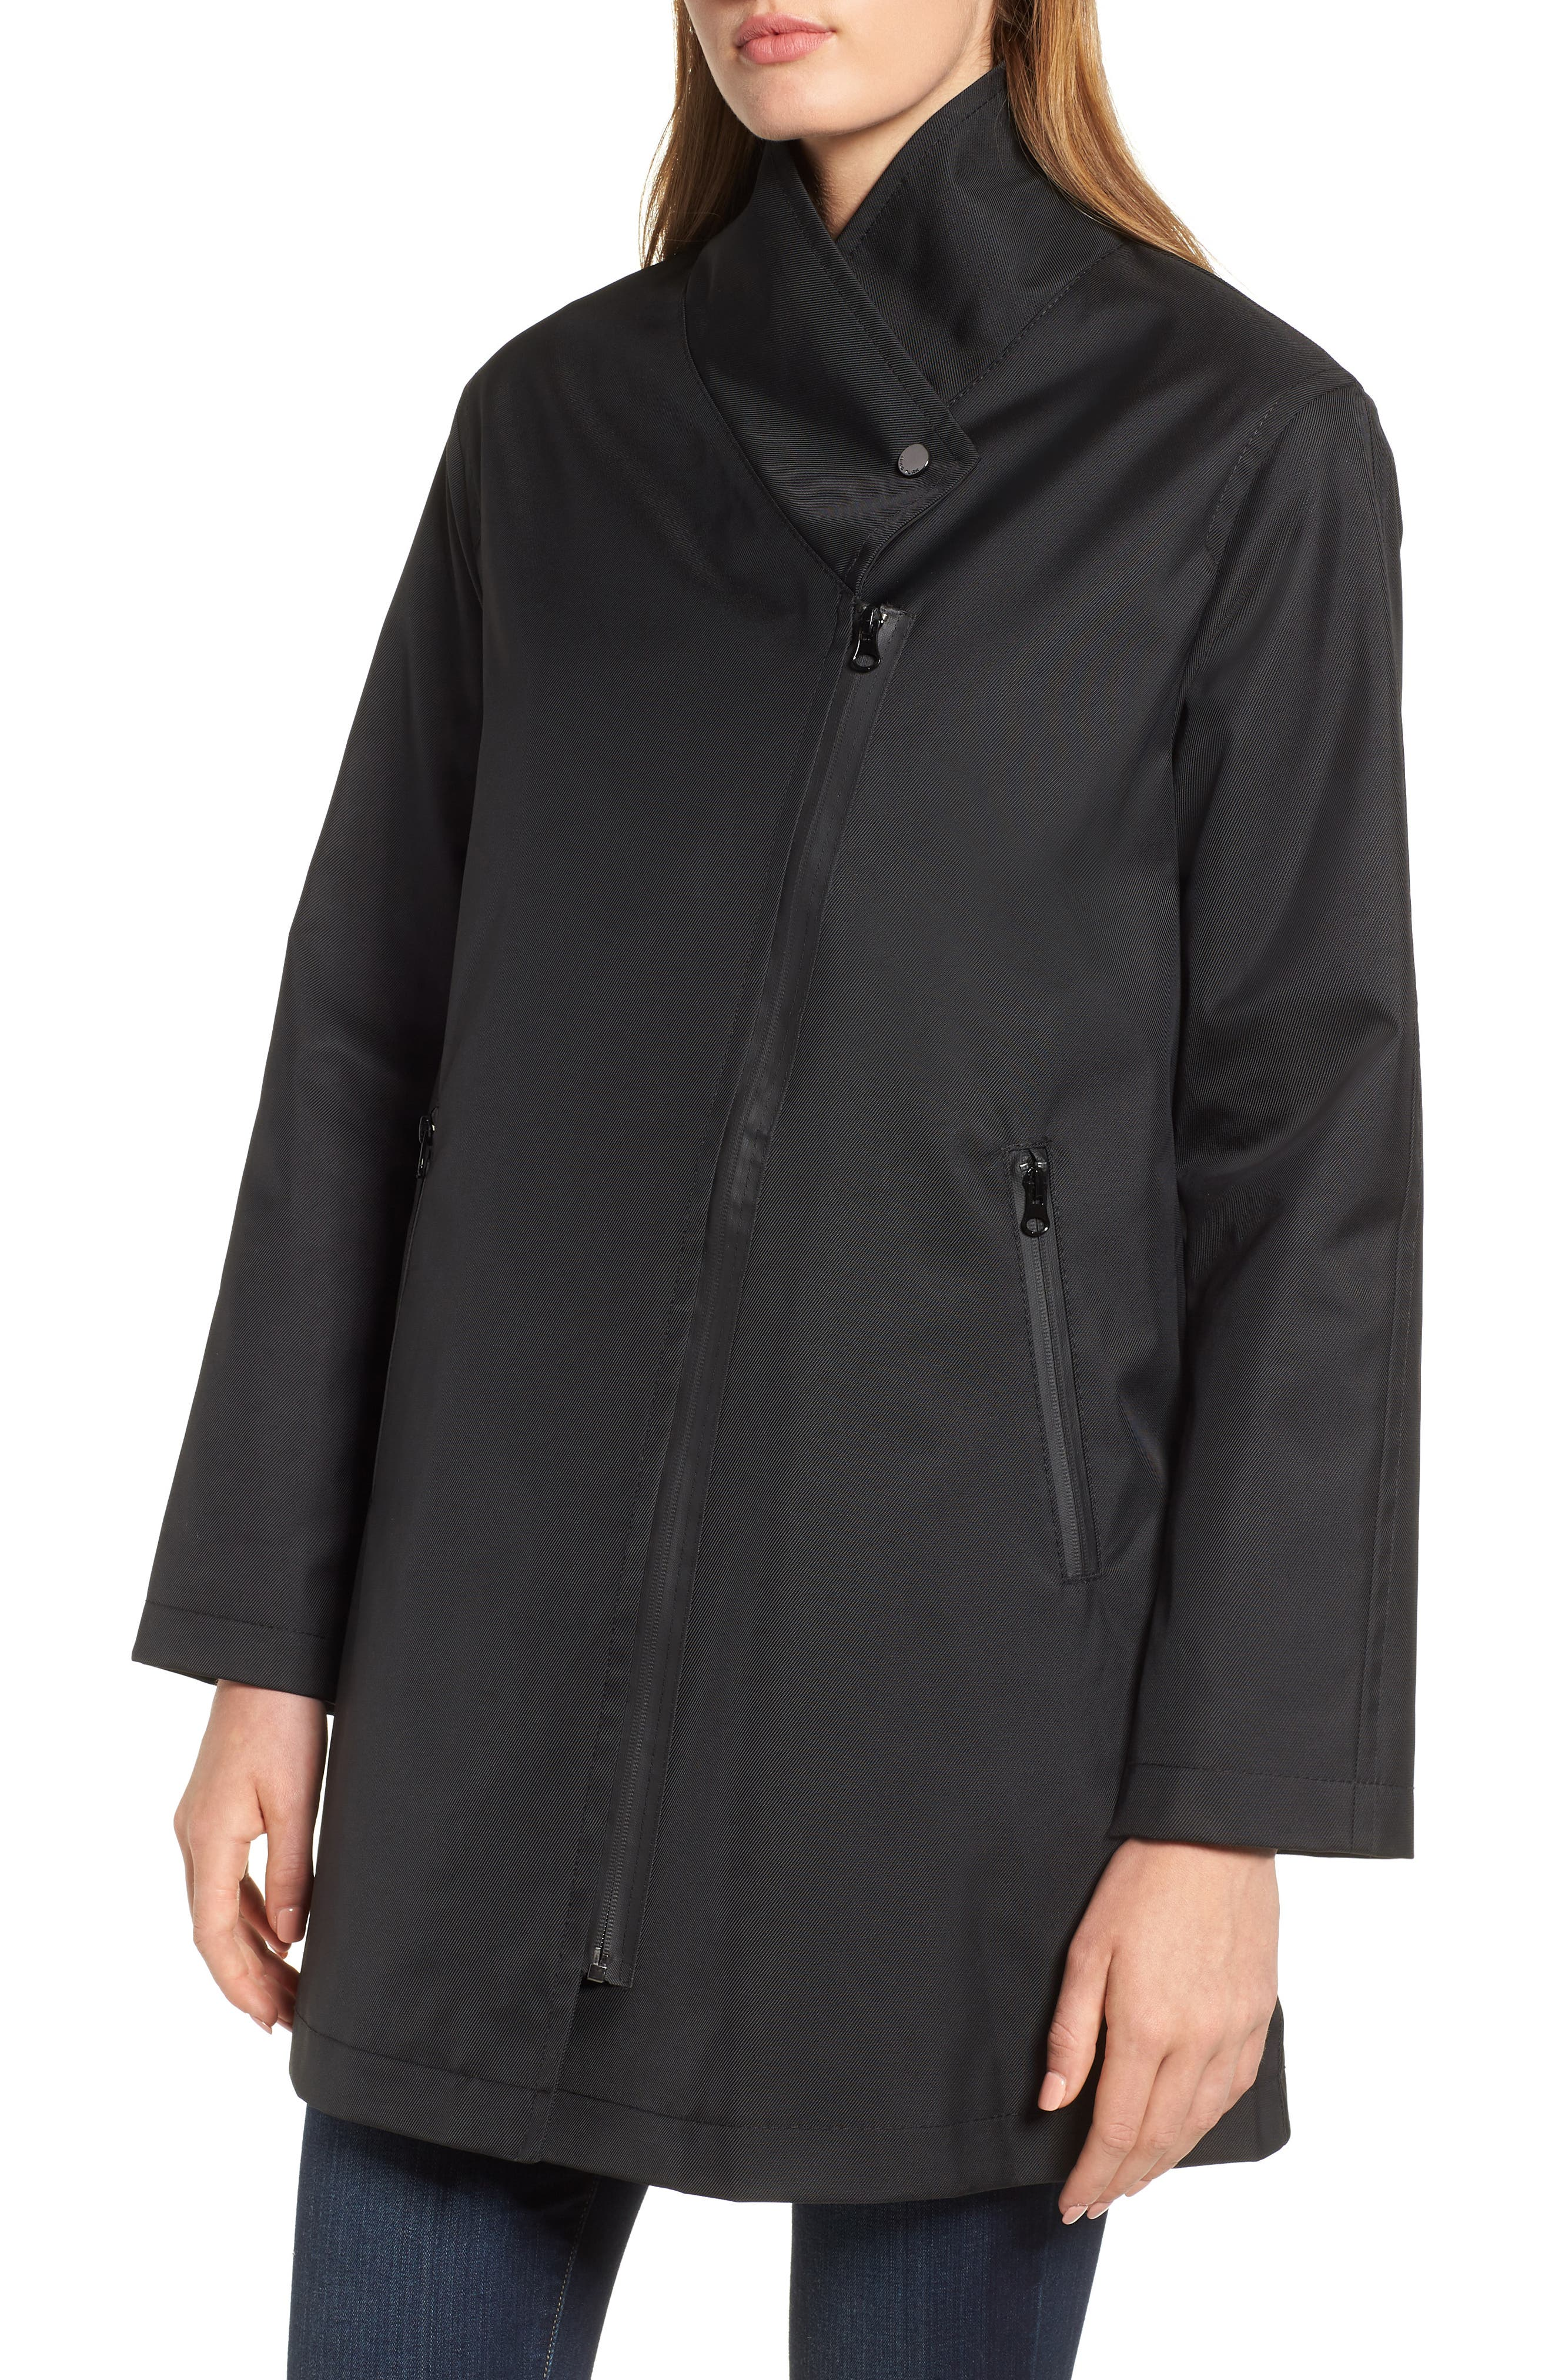 Tenley Asymmetrical Collar Coat,                             Main thumbnail 1, color,                             BLACK